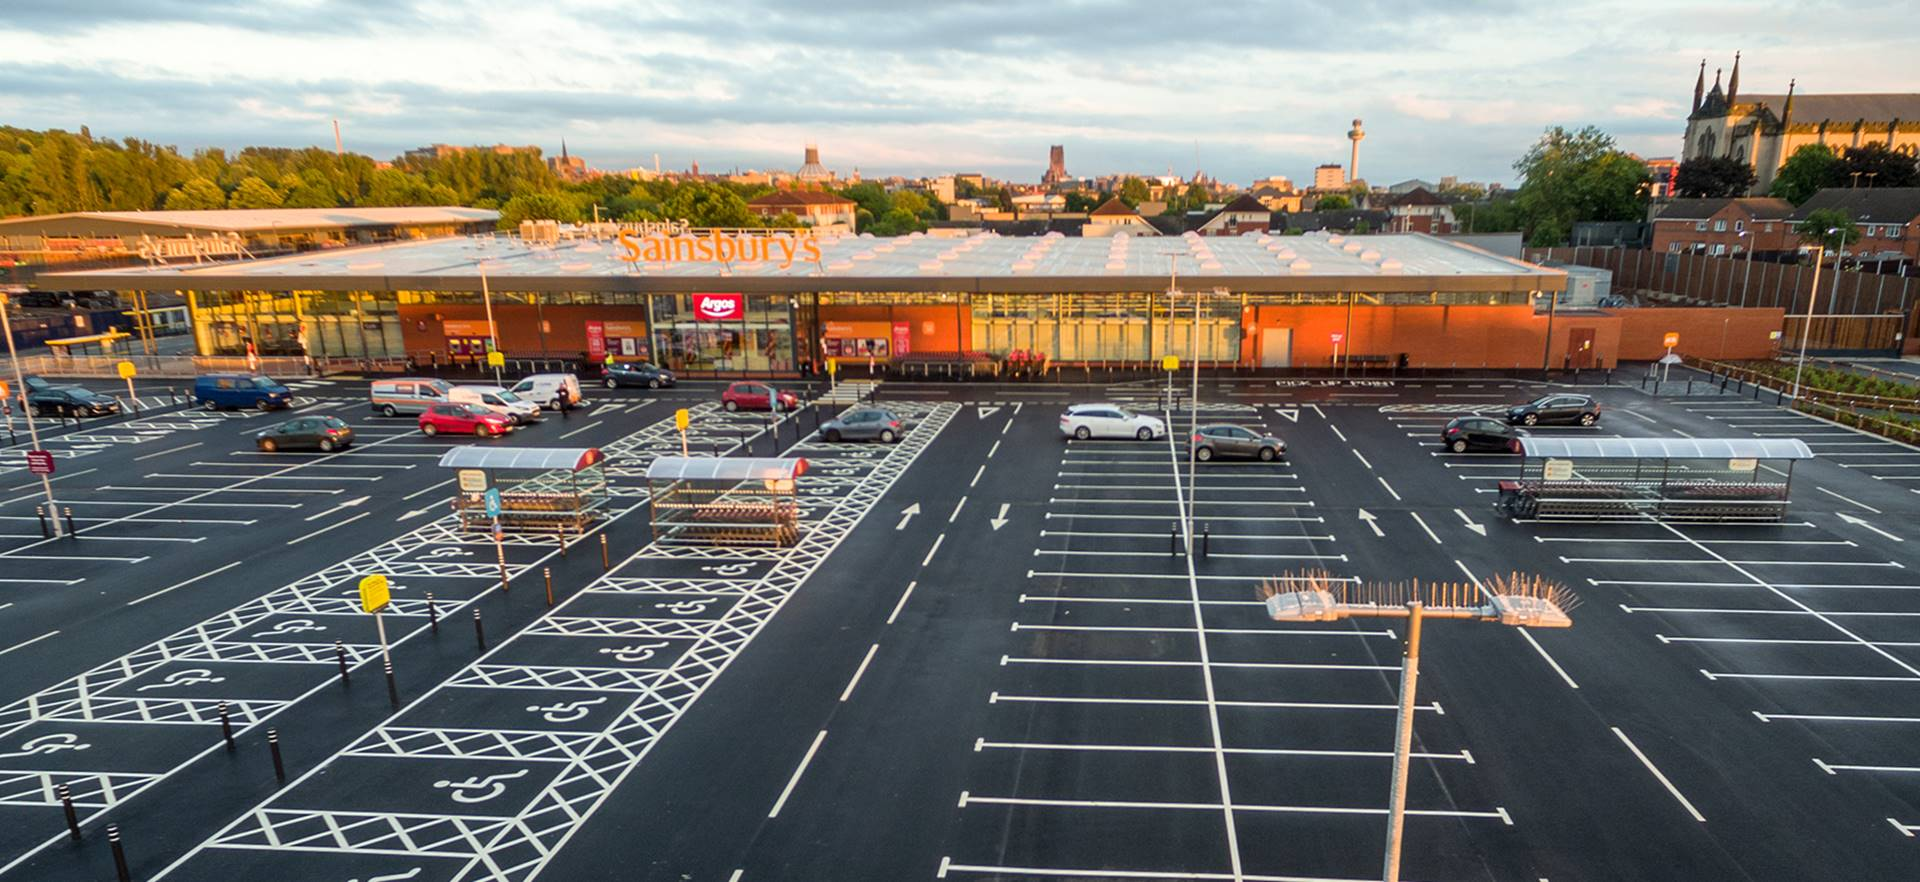 Sainsbury's Foodstore and Retail Block, Liverpool